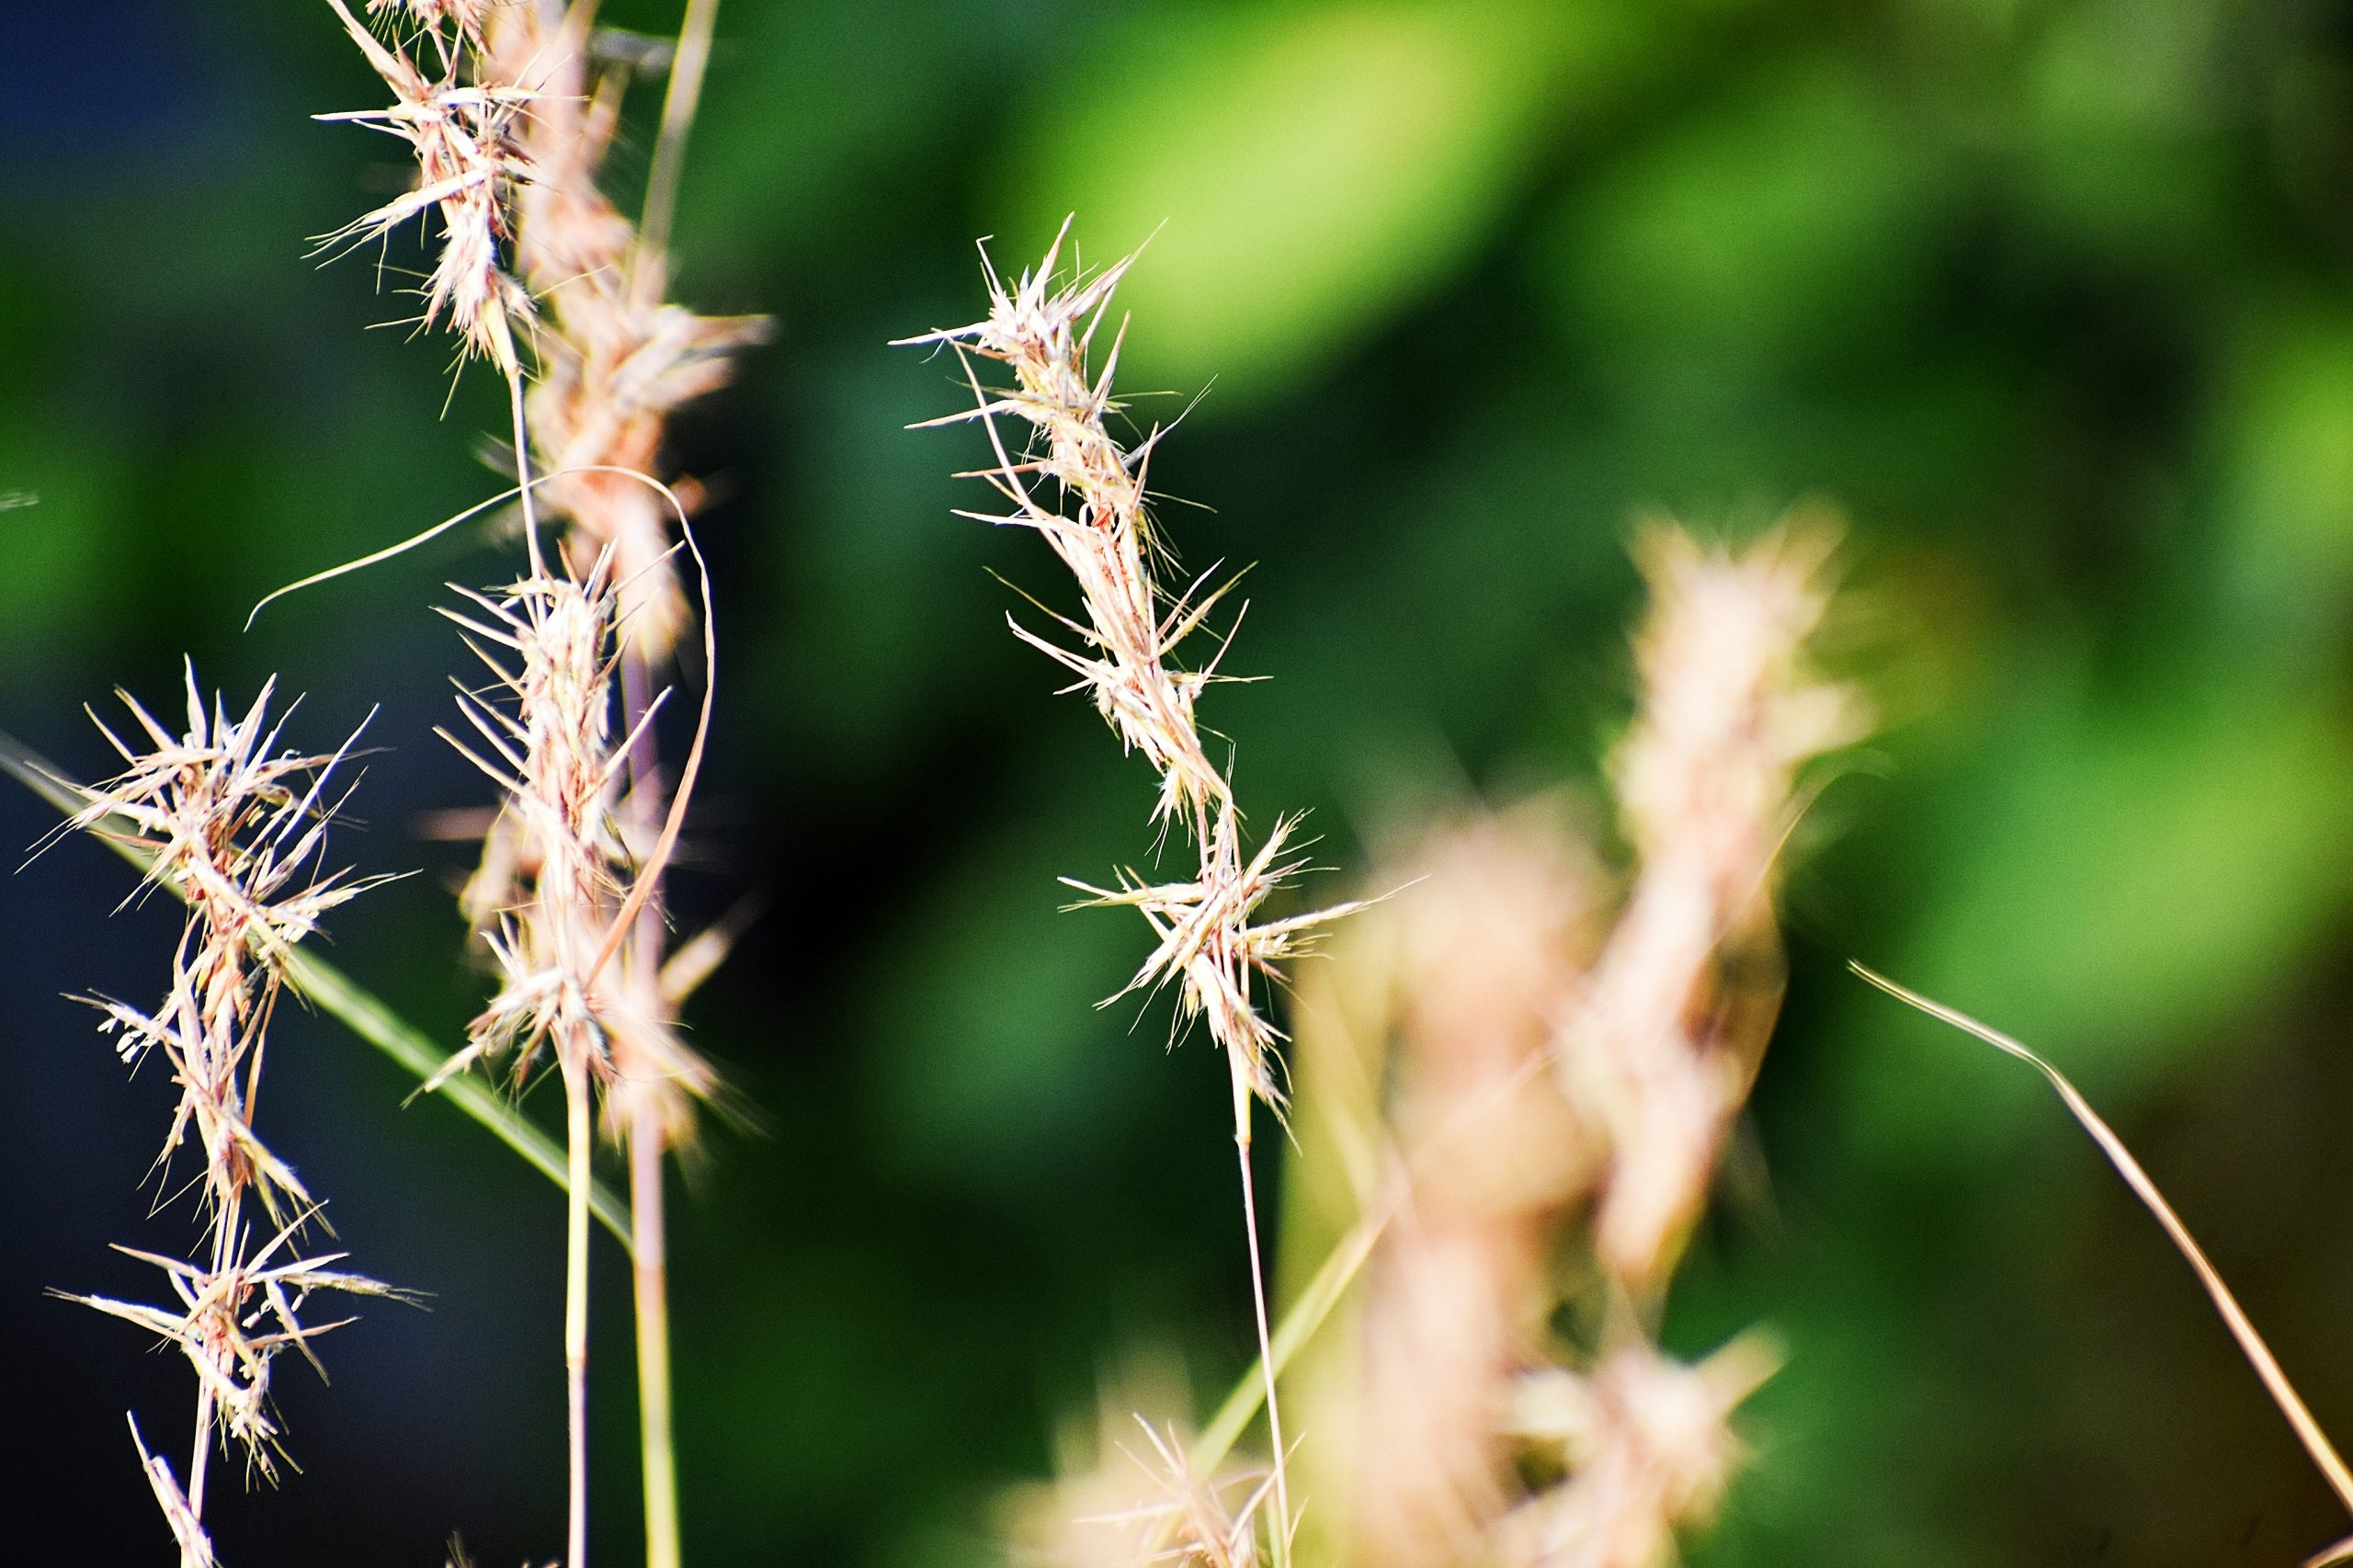 Seeds of grass